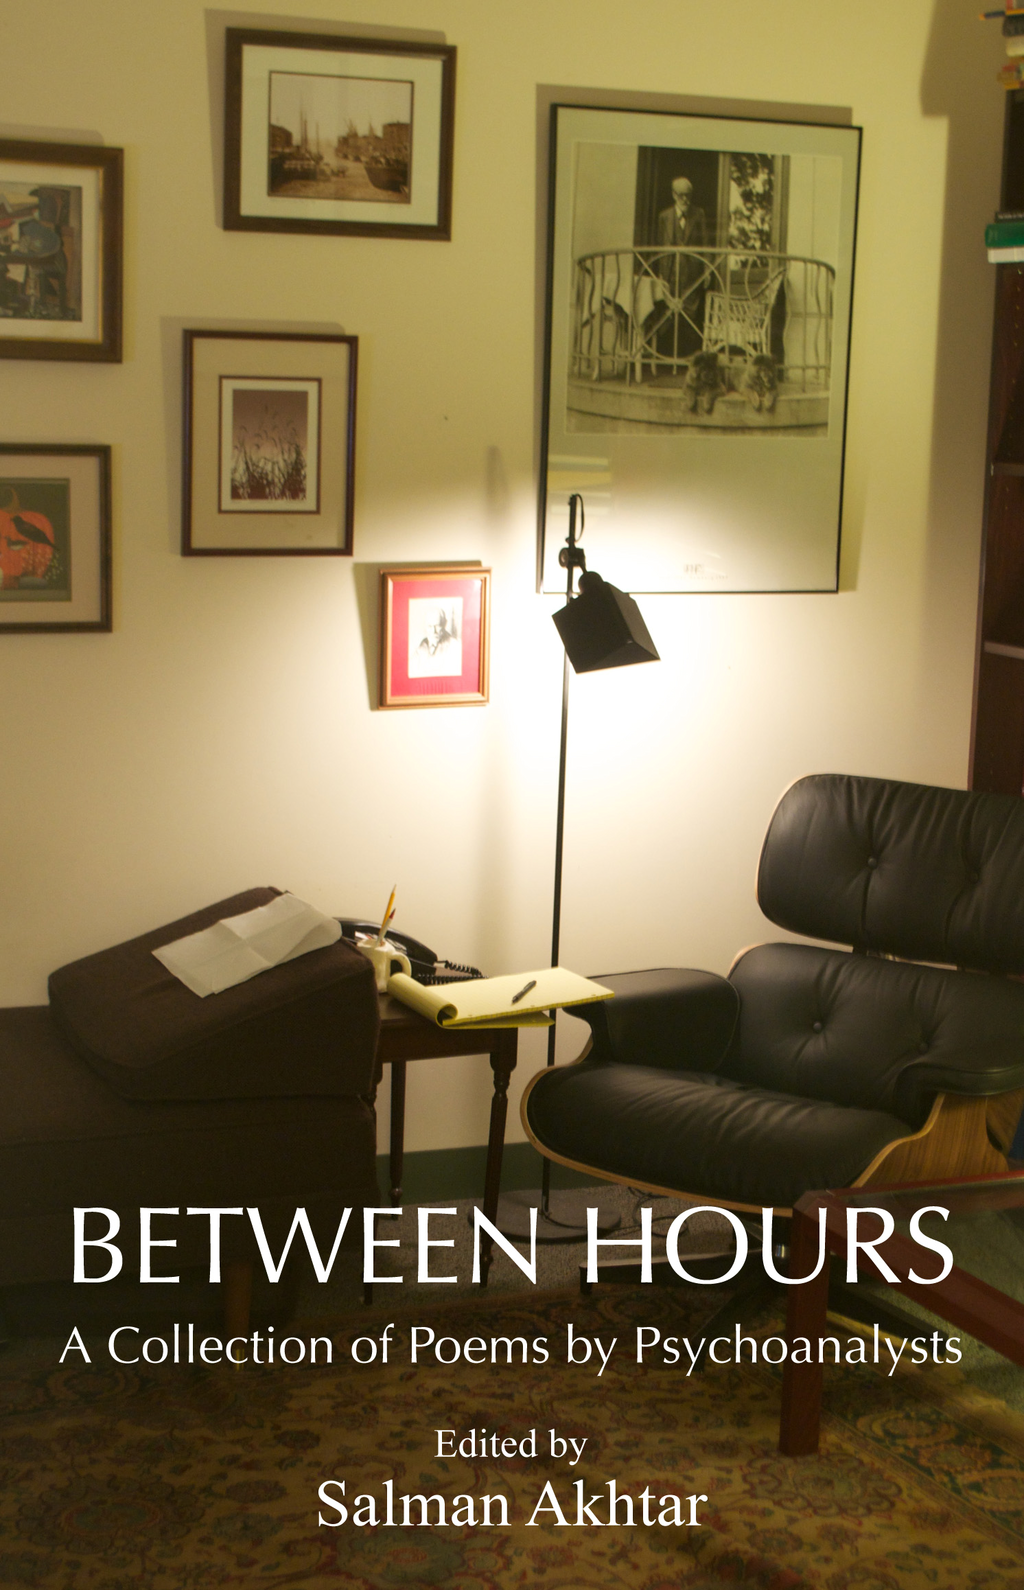 Between Hours: A Collection of Poems by Psychoanalysts